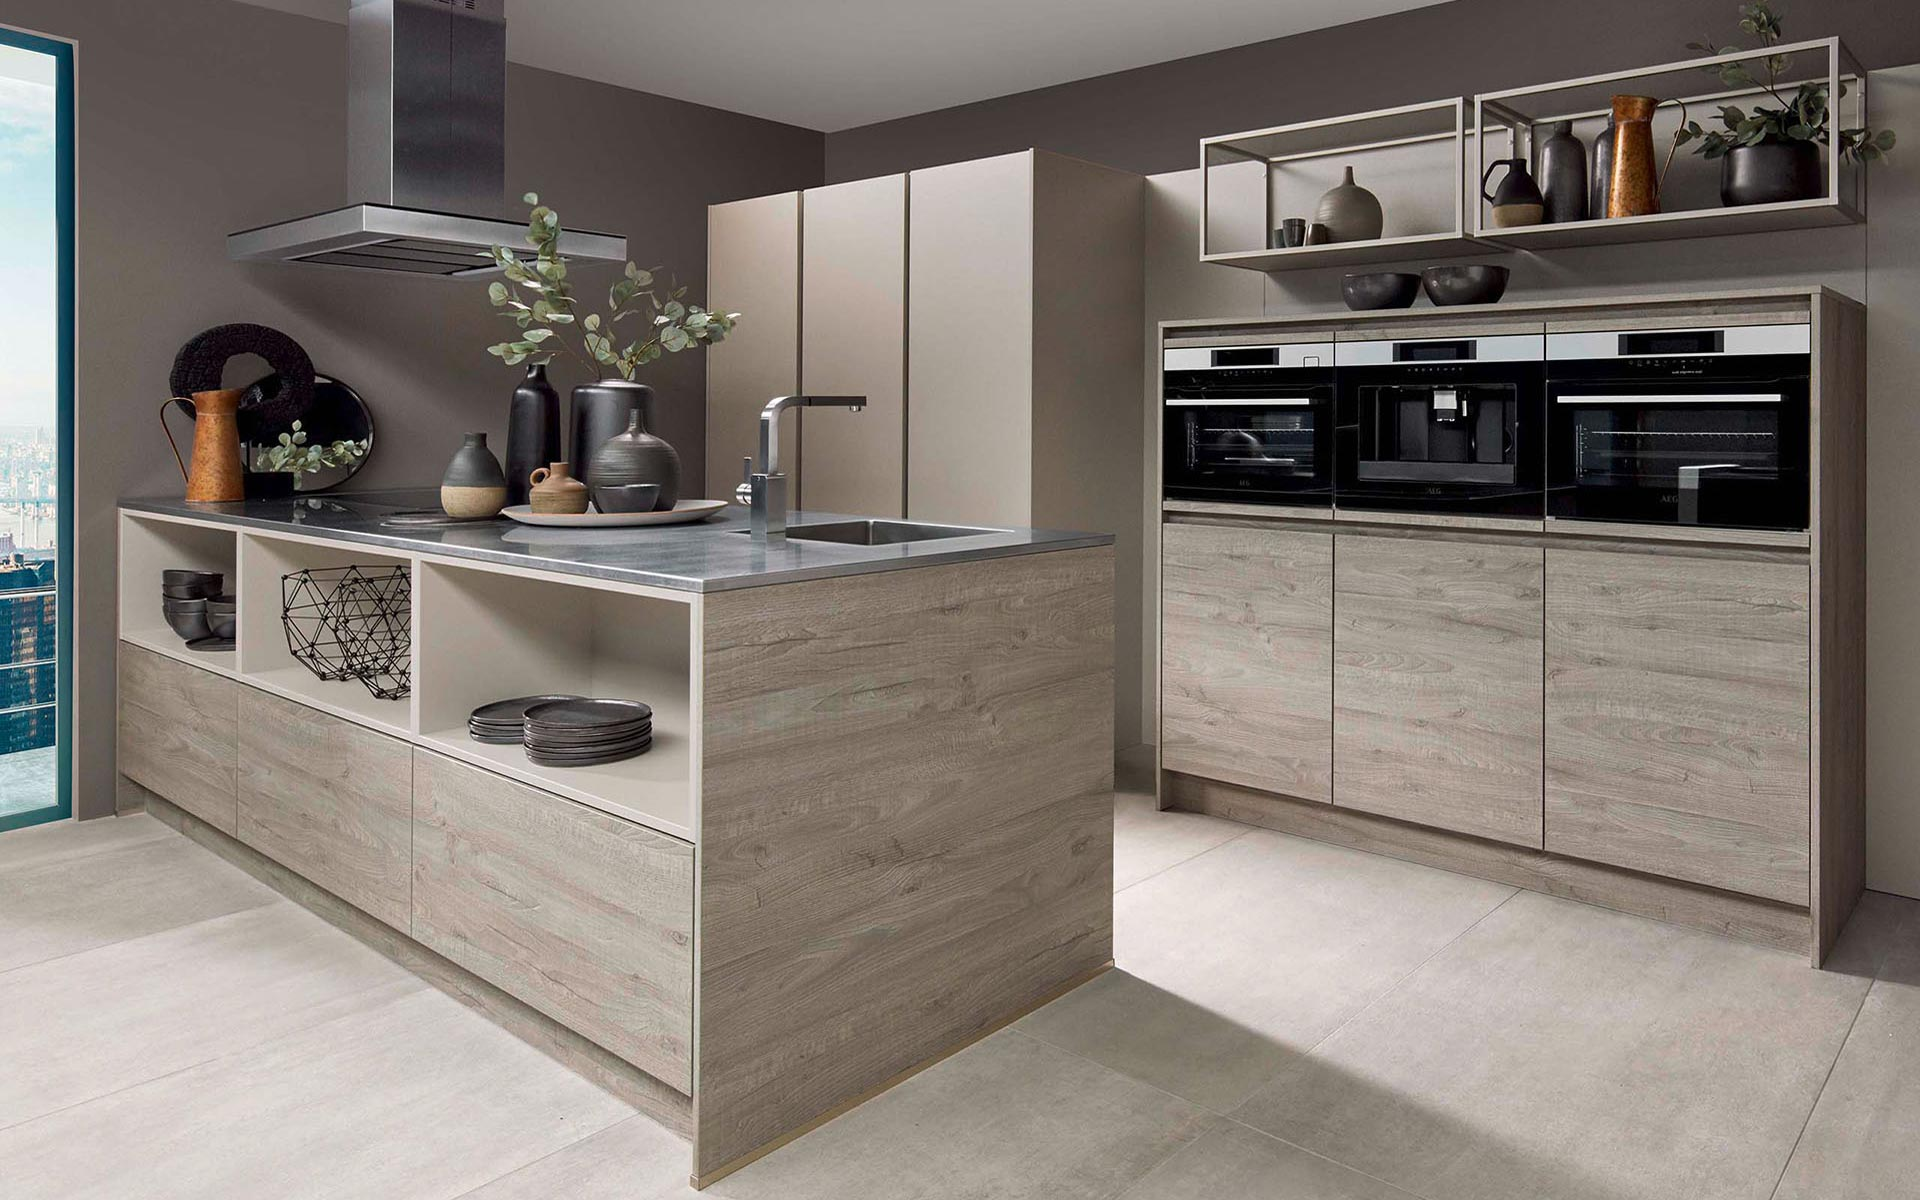 Toronto: Kitchens from Germany, Europe. Cross Reno • Sherwood H Richmond